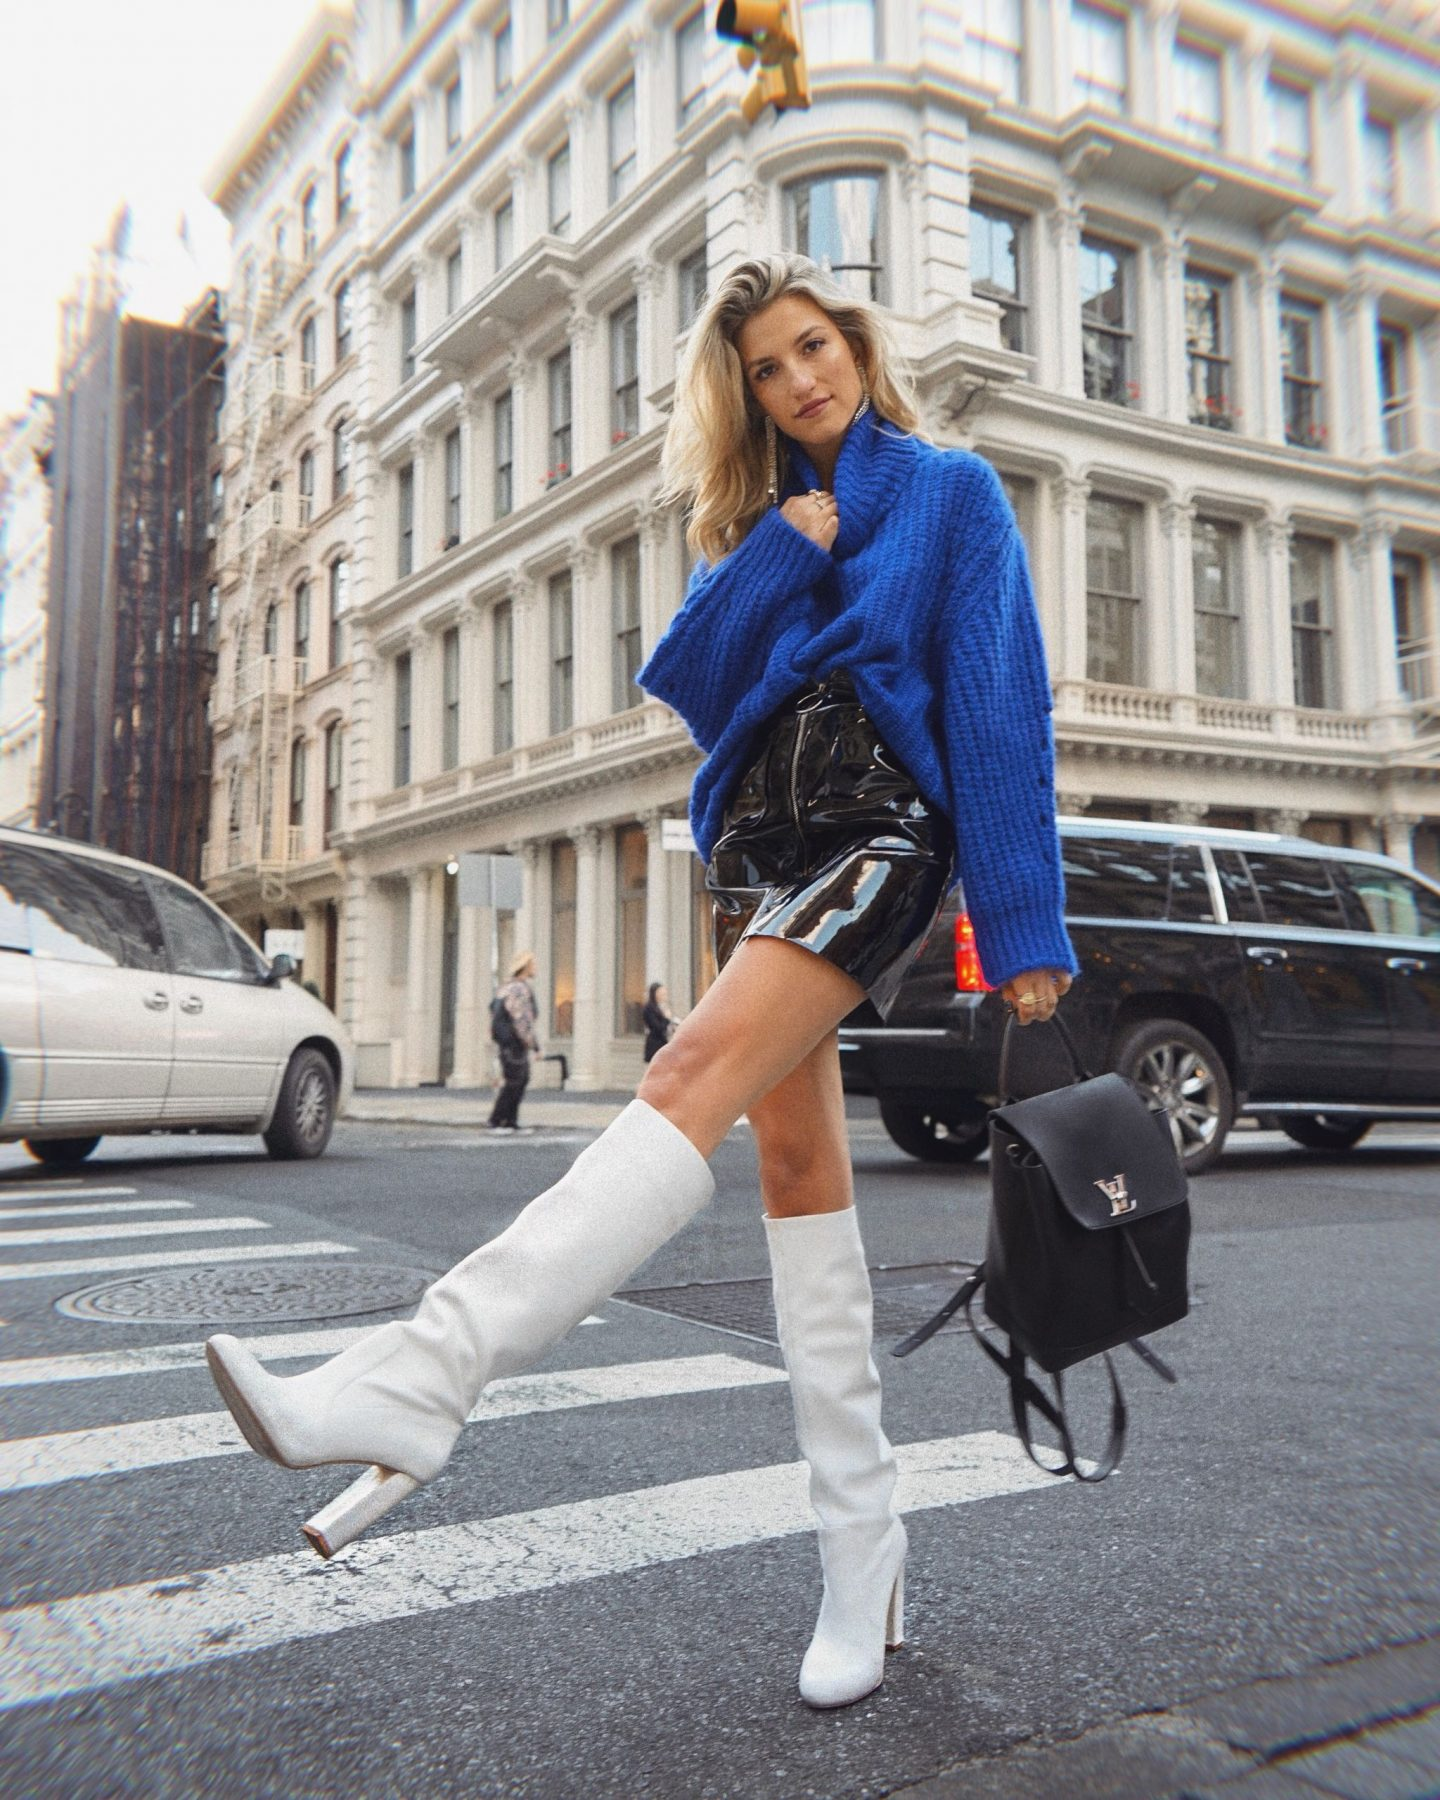 Cassandra DiMicco, Cass DiMicco, Dressed For Dreams, NYC, New York City, New York, Street Style NYC, Street Style 2018, NYC Street Style, NYC Outfit Inspo Street Style Outfits, 2018 Trends, Summer Style, Summer Outfit Inspo, NYC Fashion Blogger, NYC Fashion Blogger, NYC to do list, NYC to do, NYC bucket list, NYC Instagram Spots, ba&sh Paris, bash Paris, ba&sh turtleneck sweater, ba&sh emera sweater, storets Magda patent leather skirt, patent leather skirt, fall fashion, fall outfit ideas, fall outfit inspo, tall white leather boots, knee high white boots, white leather boots, Louis Vuitton backpack, lockme backpack, Louis Vuitton lockme backpack, soho, Steve Madden, Steve Madden Eton boot